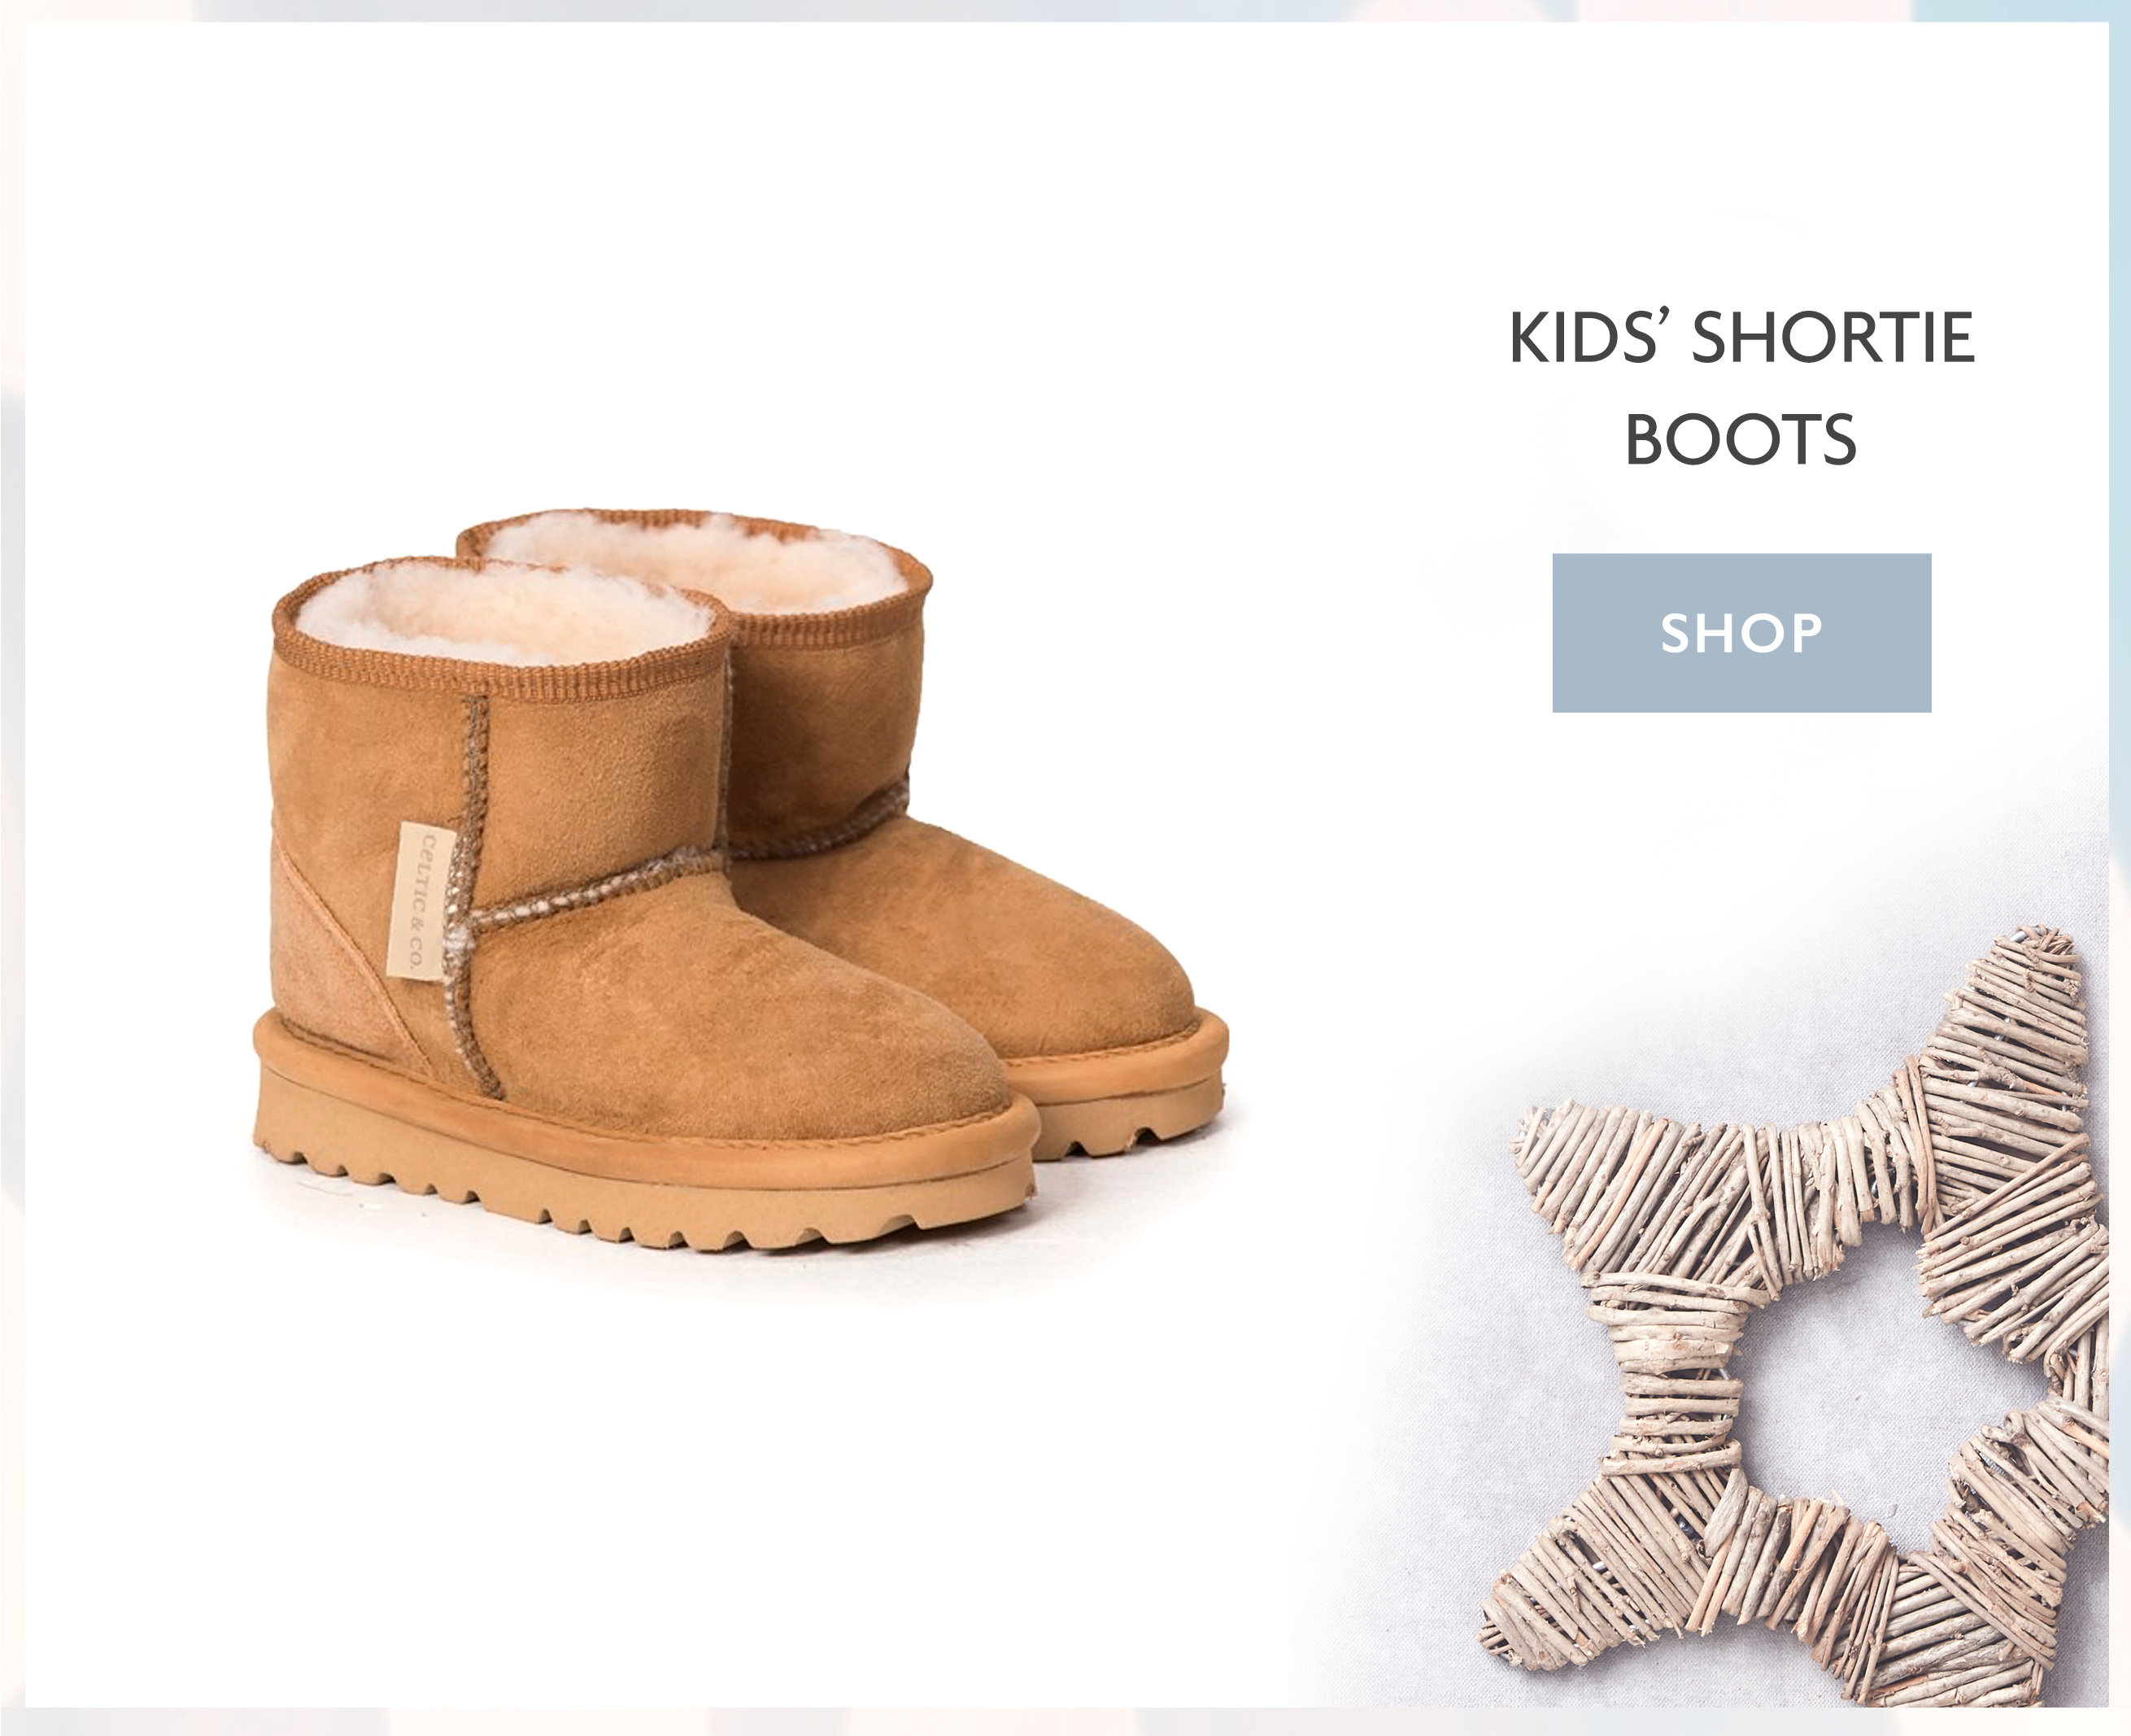 Kids' Shortie Boots